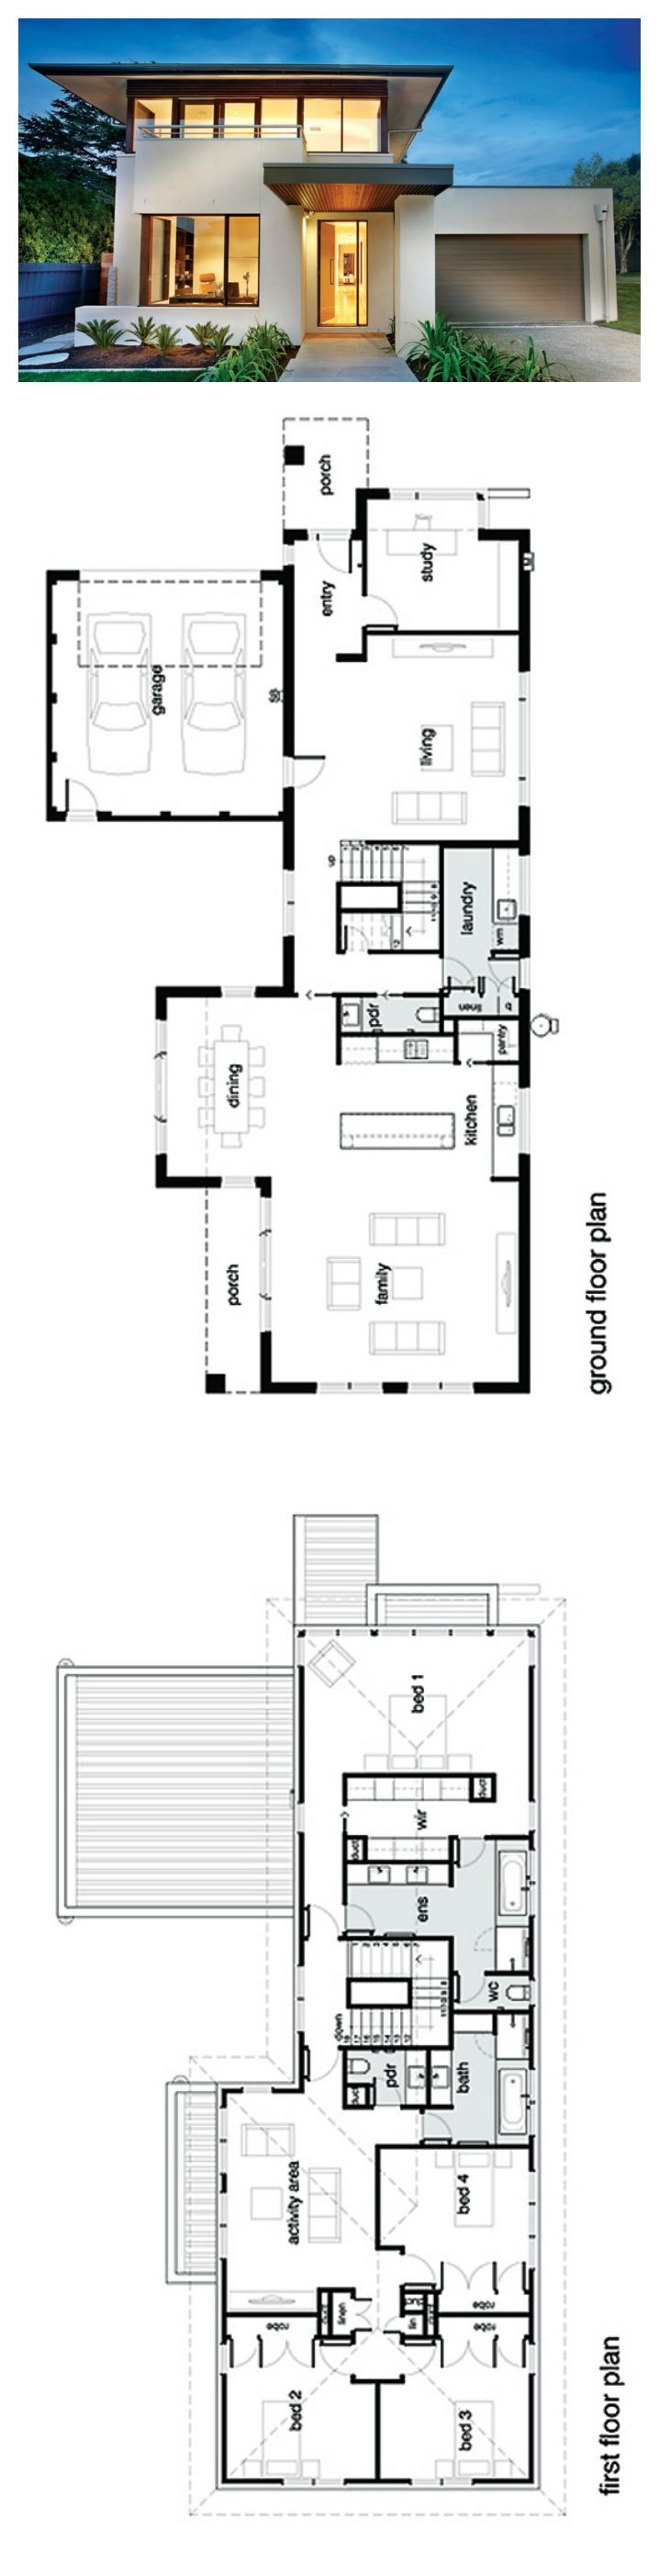 The 25 best ideas about modern house plans on pinterest for Modern house design single floor